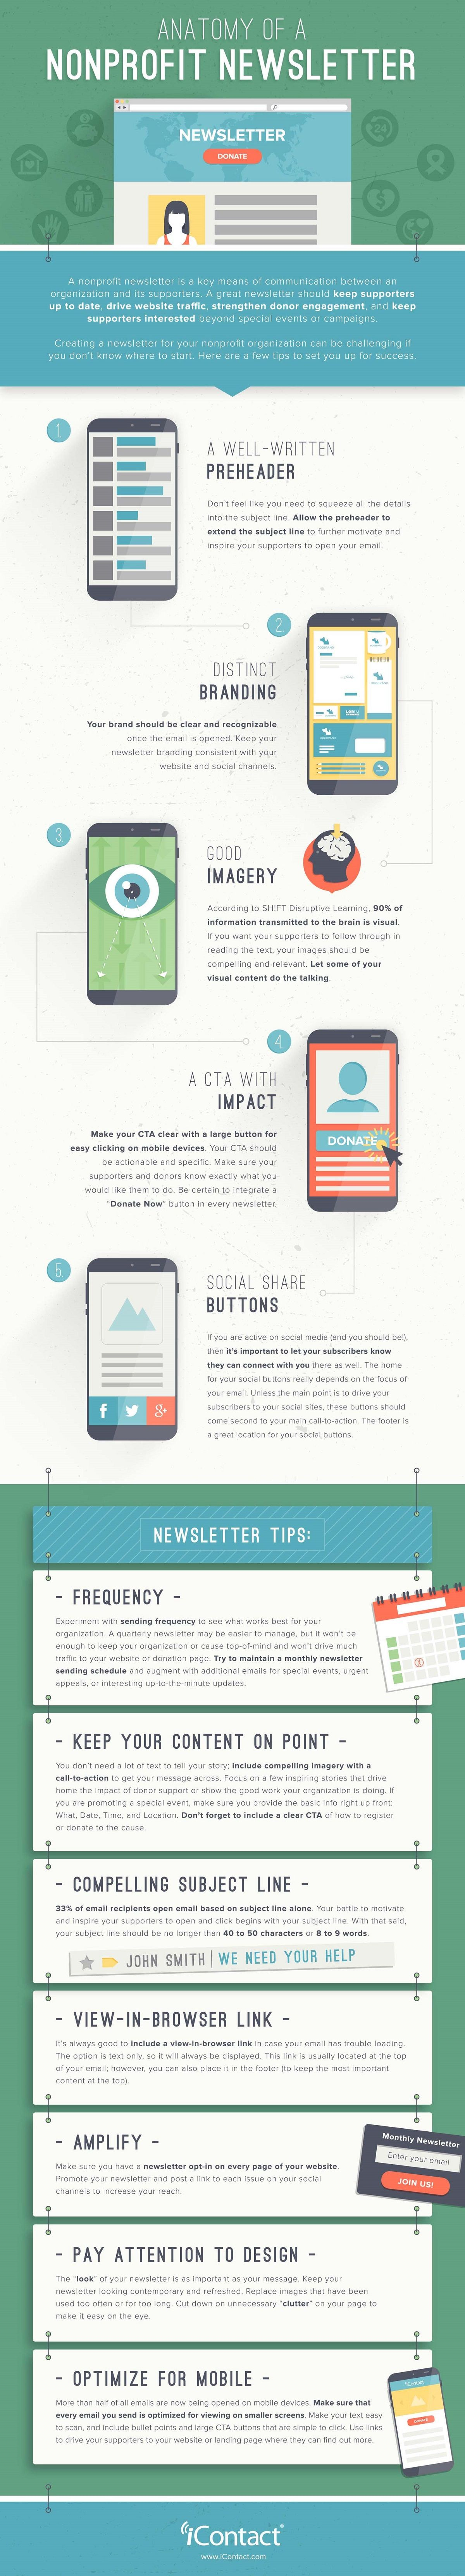 Anatomy of a Nonprofit Newsletter #Infographic